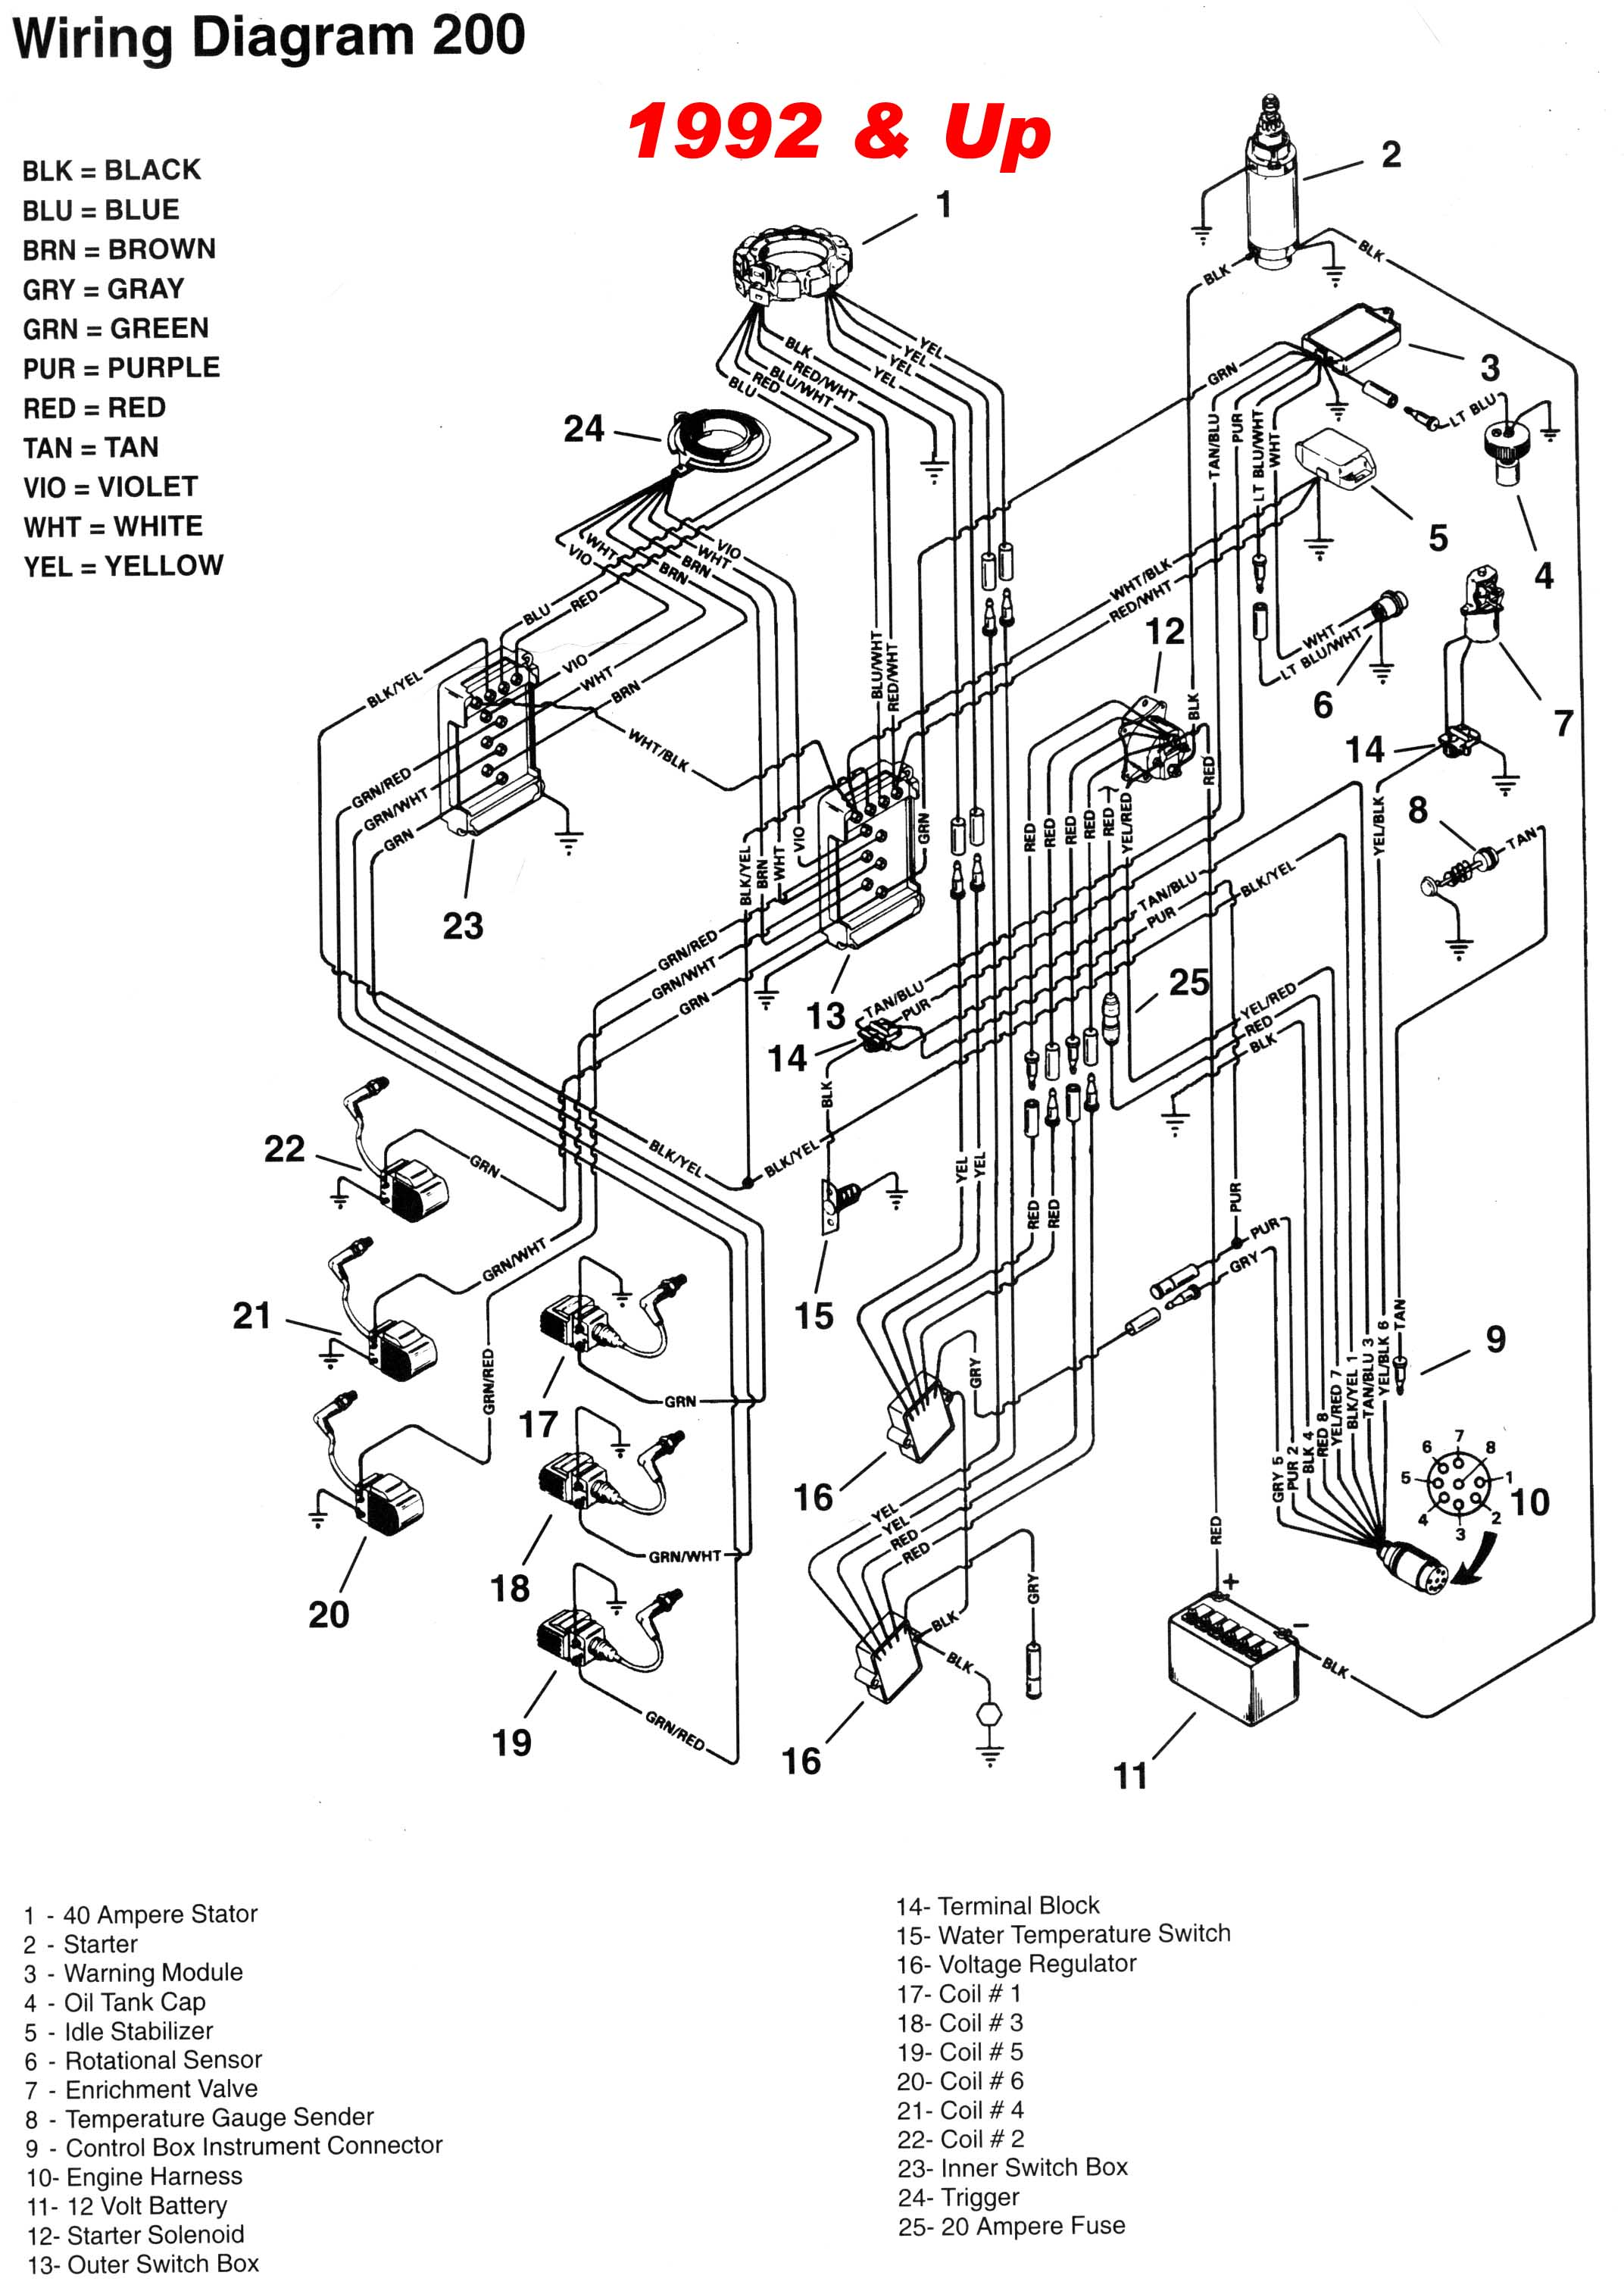 88 ford fuel gauge wiring diagram pdf with Mercury Boat Motors Wiring Diagram on Mustang Wiring Diagrams further odicis moreover Cadillac Pcm Wiring Diagram 1991 moreover Recuerdos Graduacion Lima Callao as well Mercury Boat Motors Wiring Diagram.